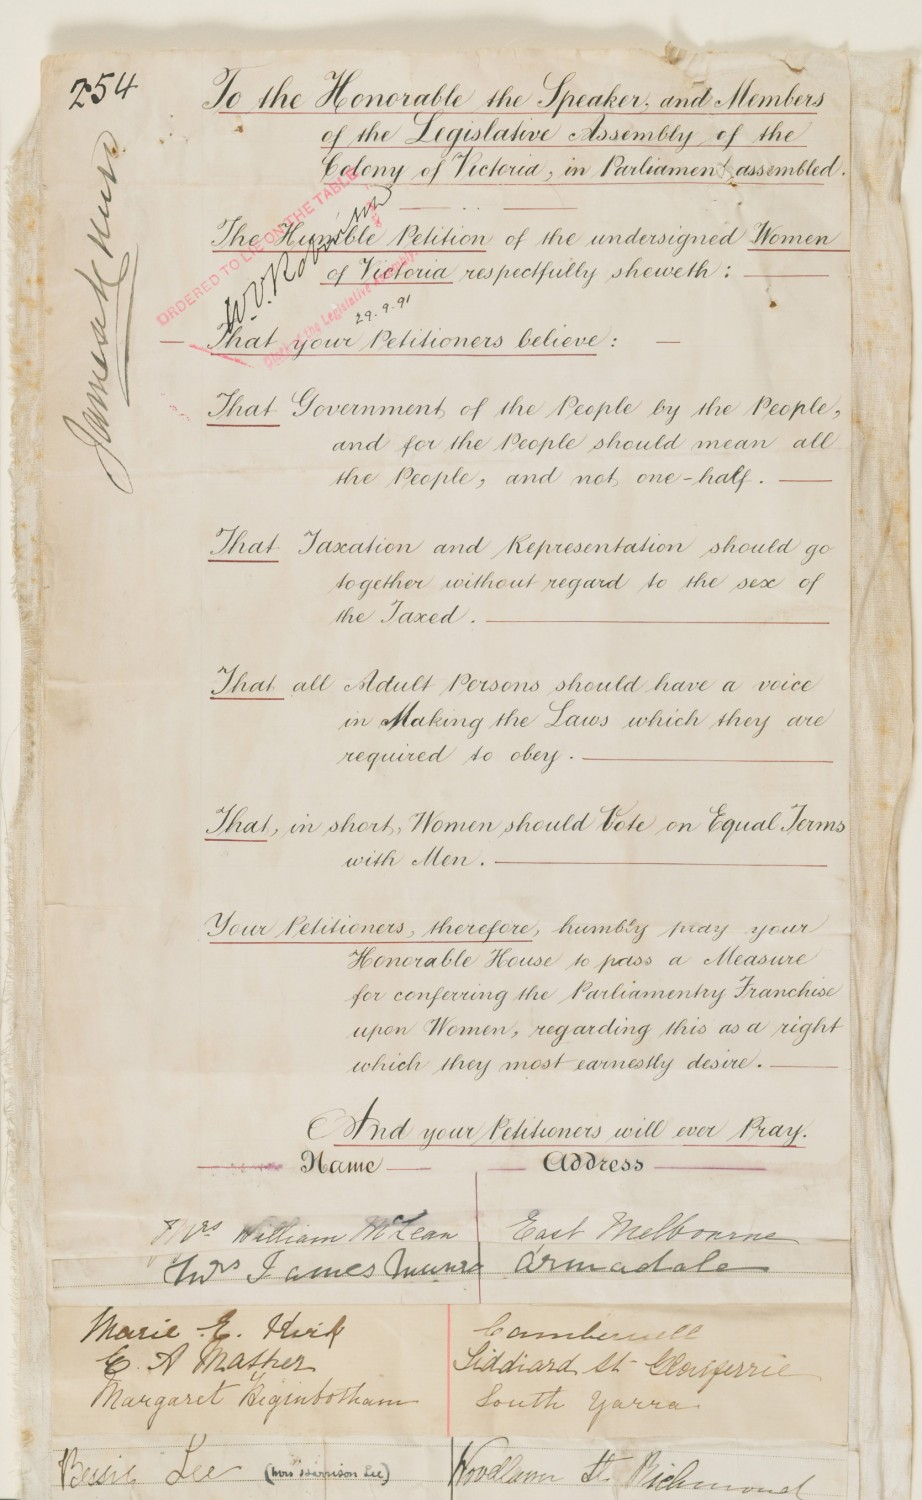 1891 Petition for Female Suffrage